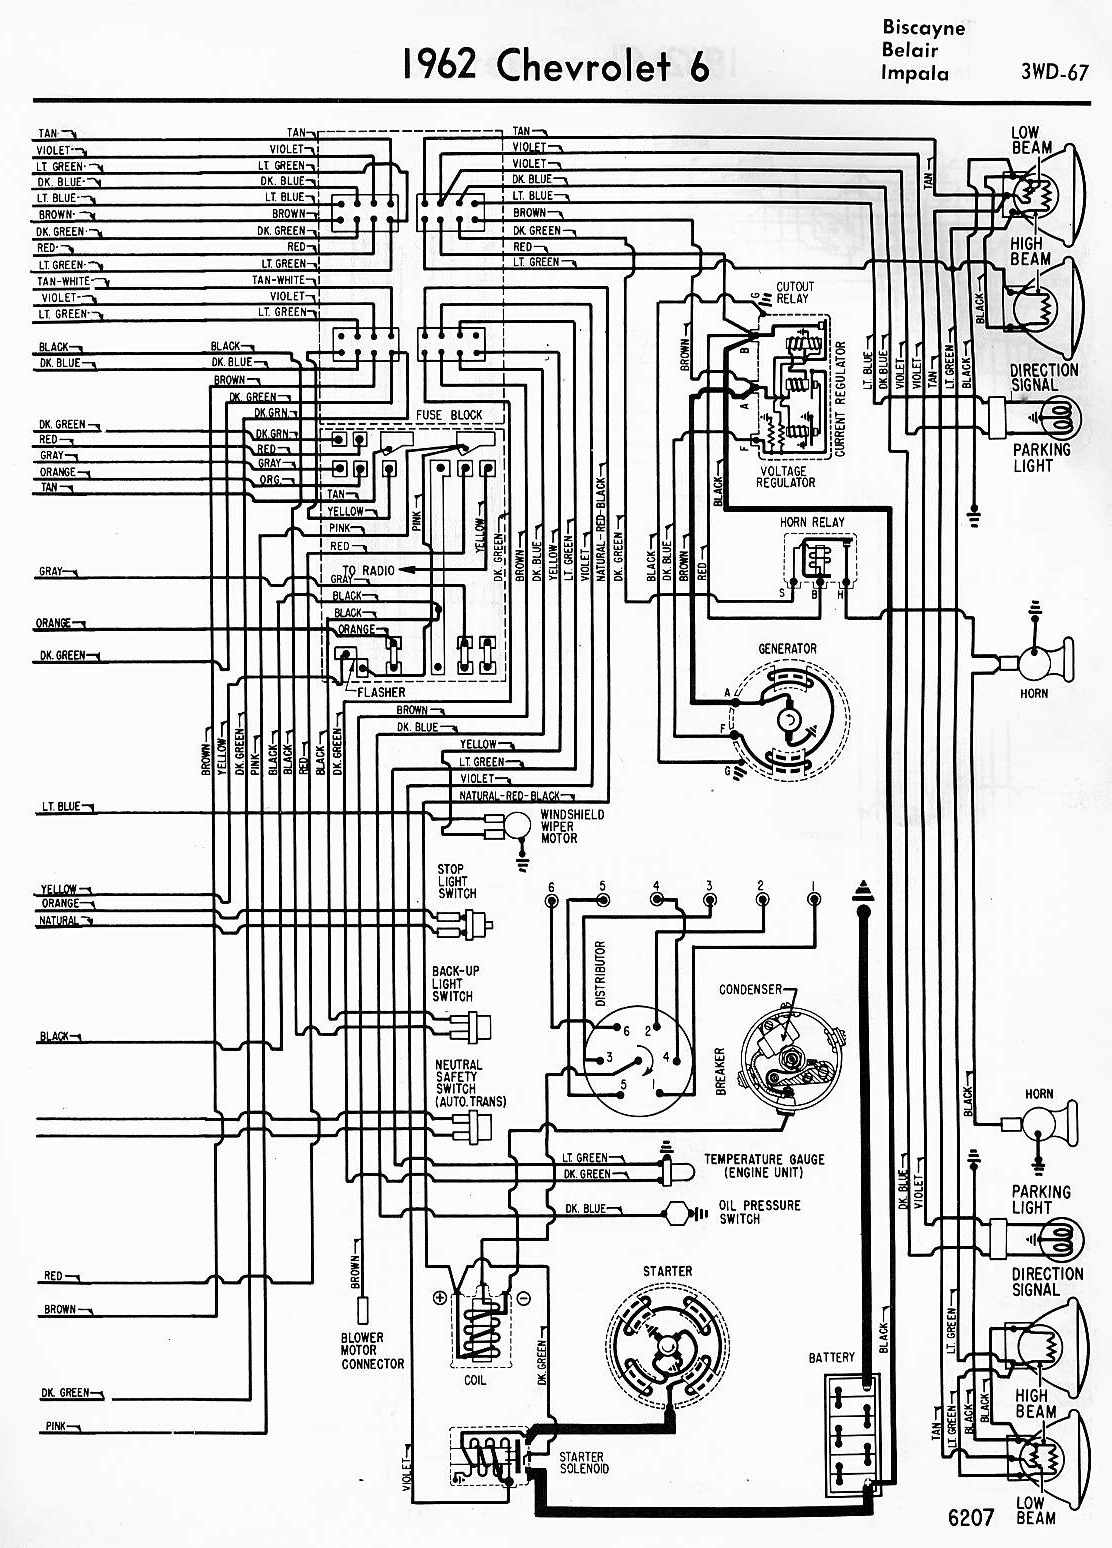 Electrical+Wiring+Diagram+Of+1964+Chevrolet+6 2011 impala wiring diagram 2005 impala ignition wiring diagram 2005 impala ignition switch wiring diagram at cos-gaming.co